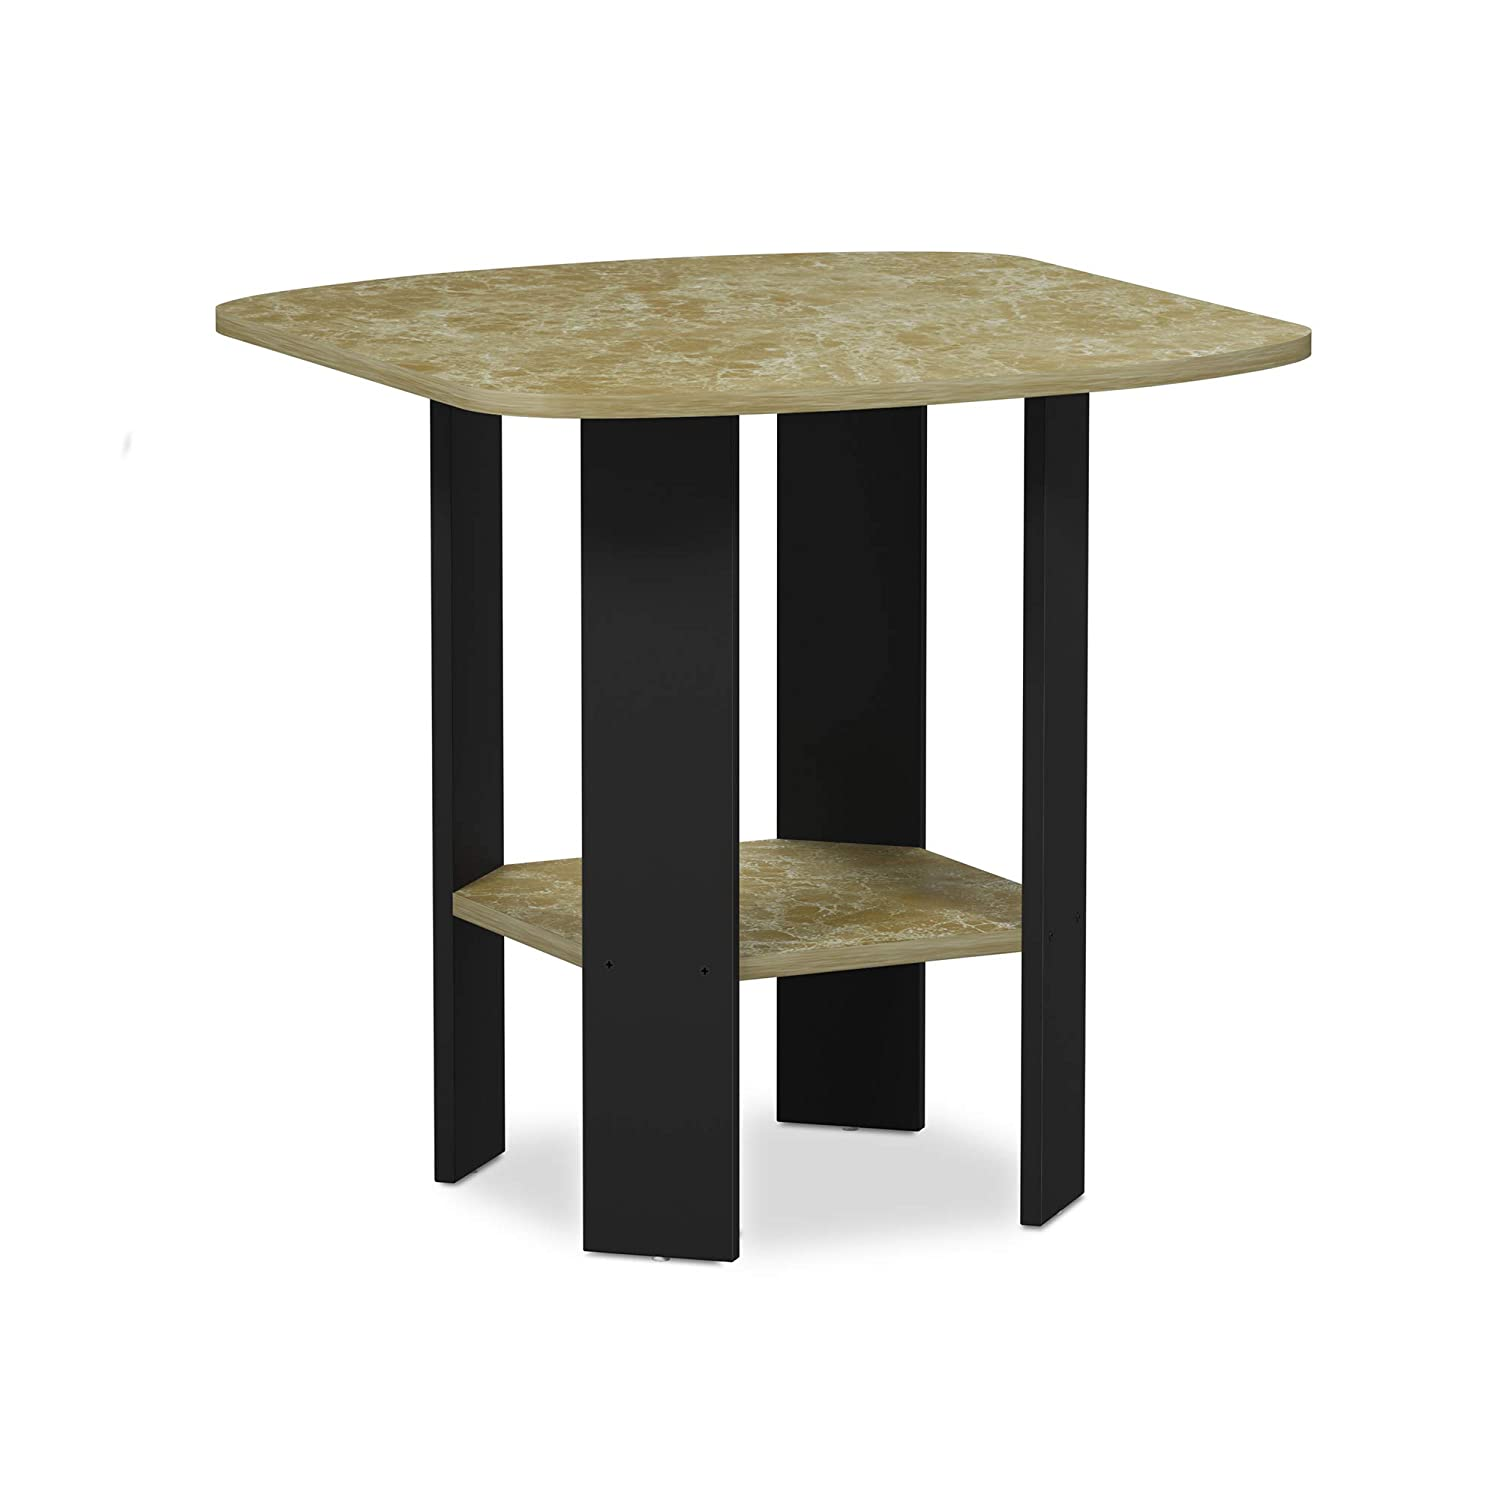 Brown Faux Marble 1 End Table Furinno 11179DWN Simple Design Coffee Table, Dark Walnut